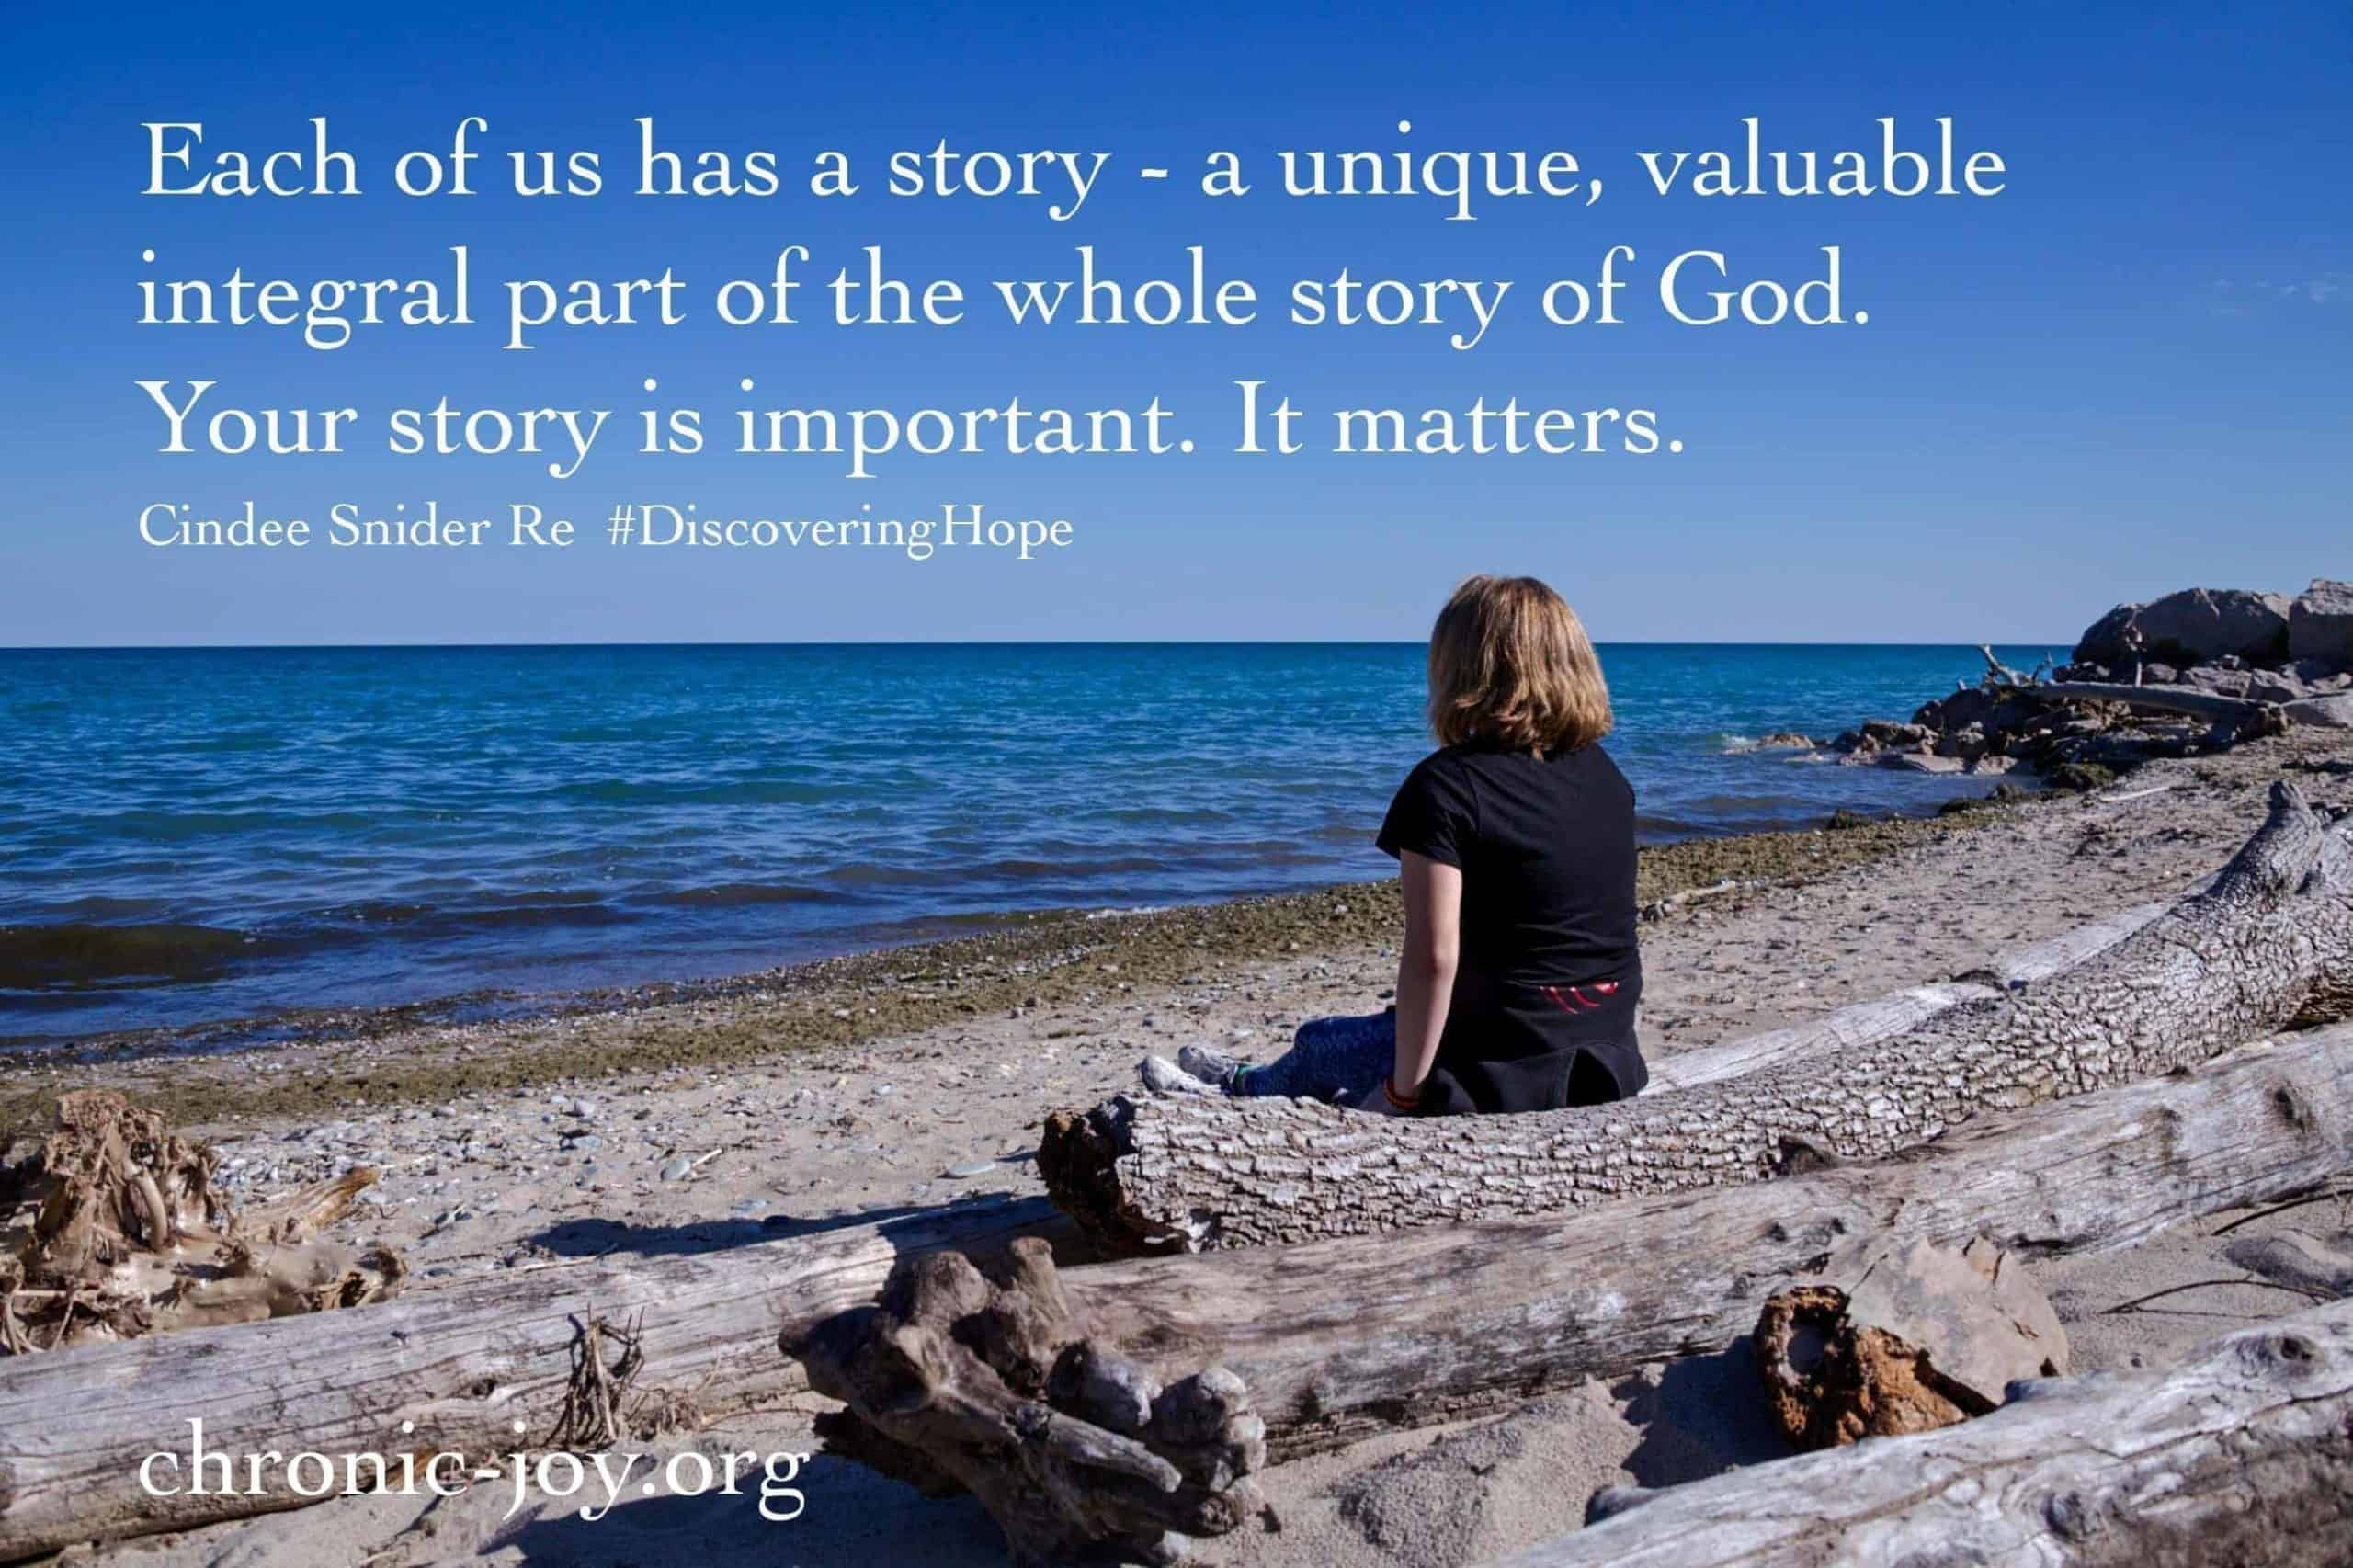 Each of us has a story...